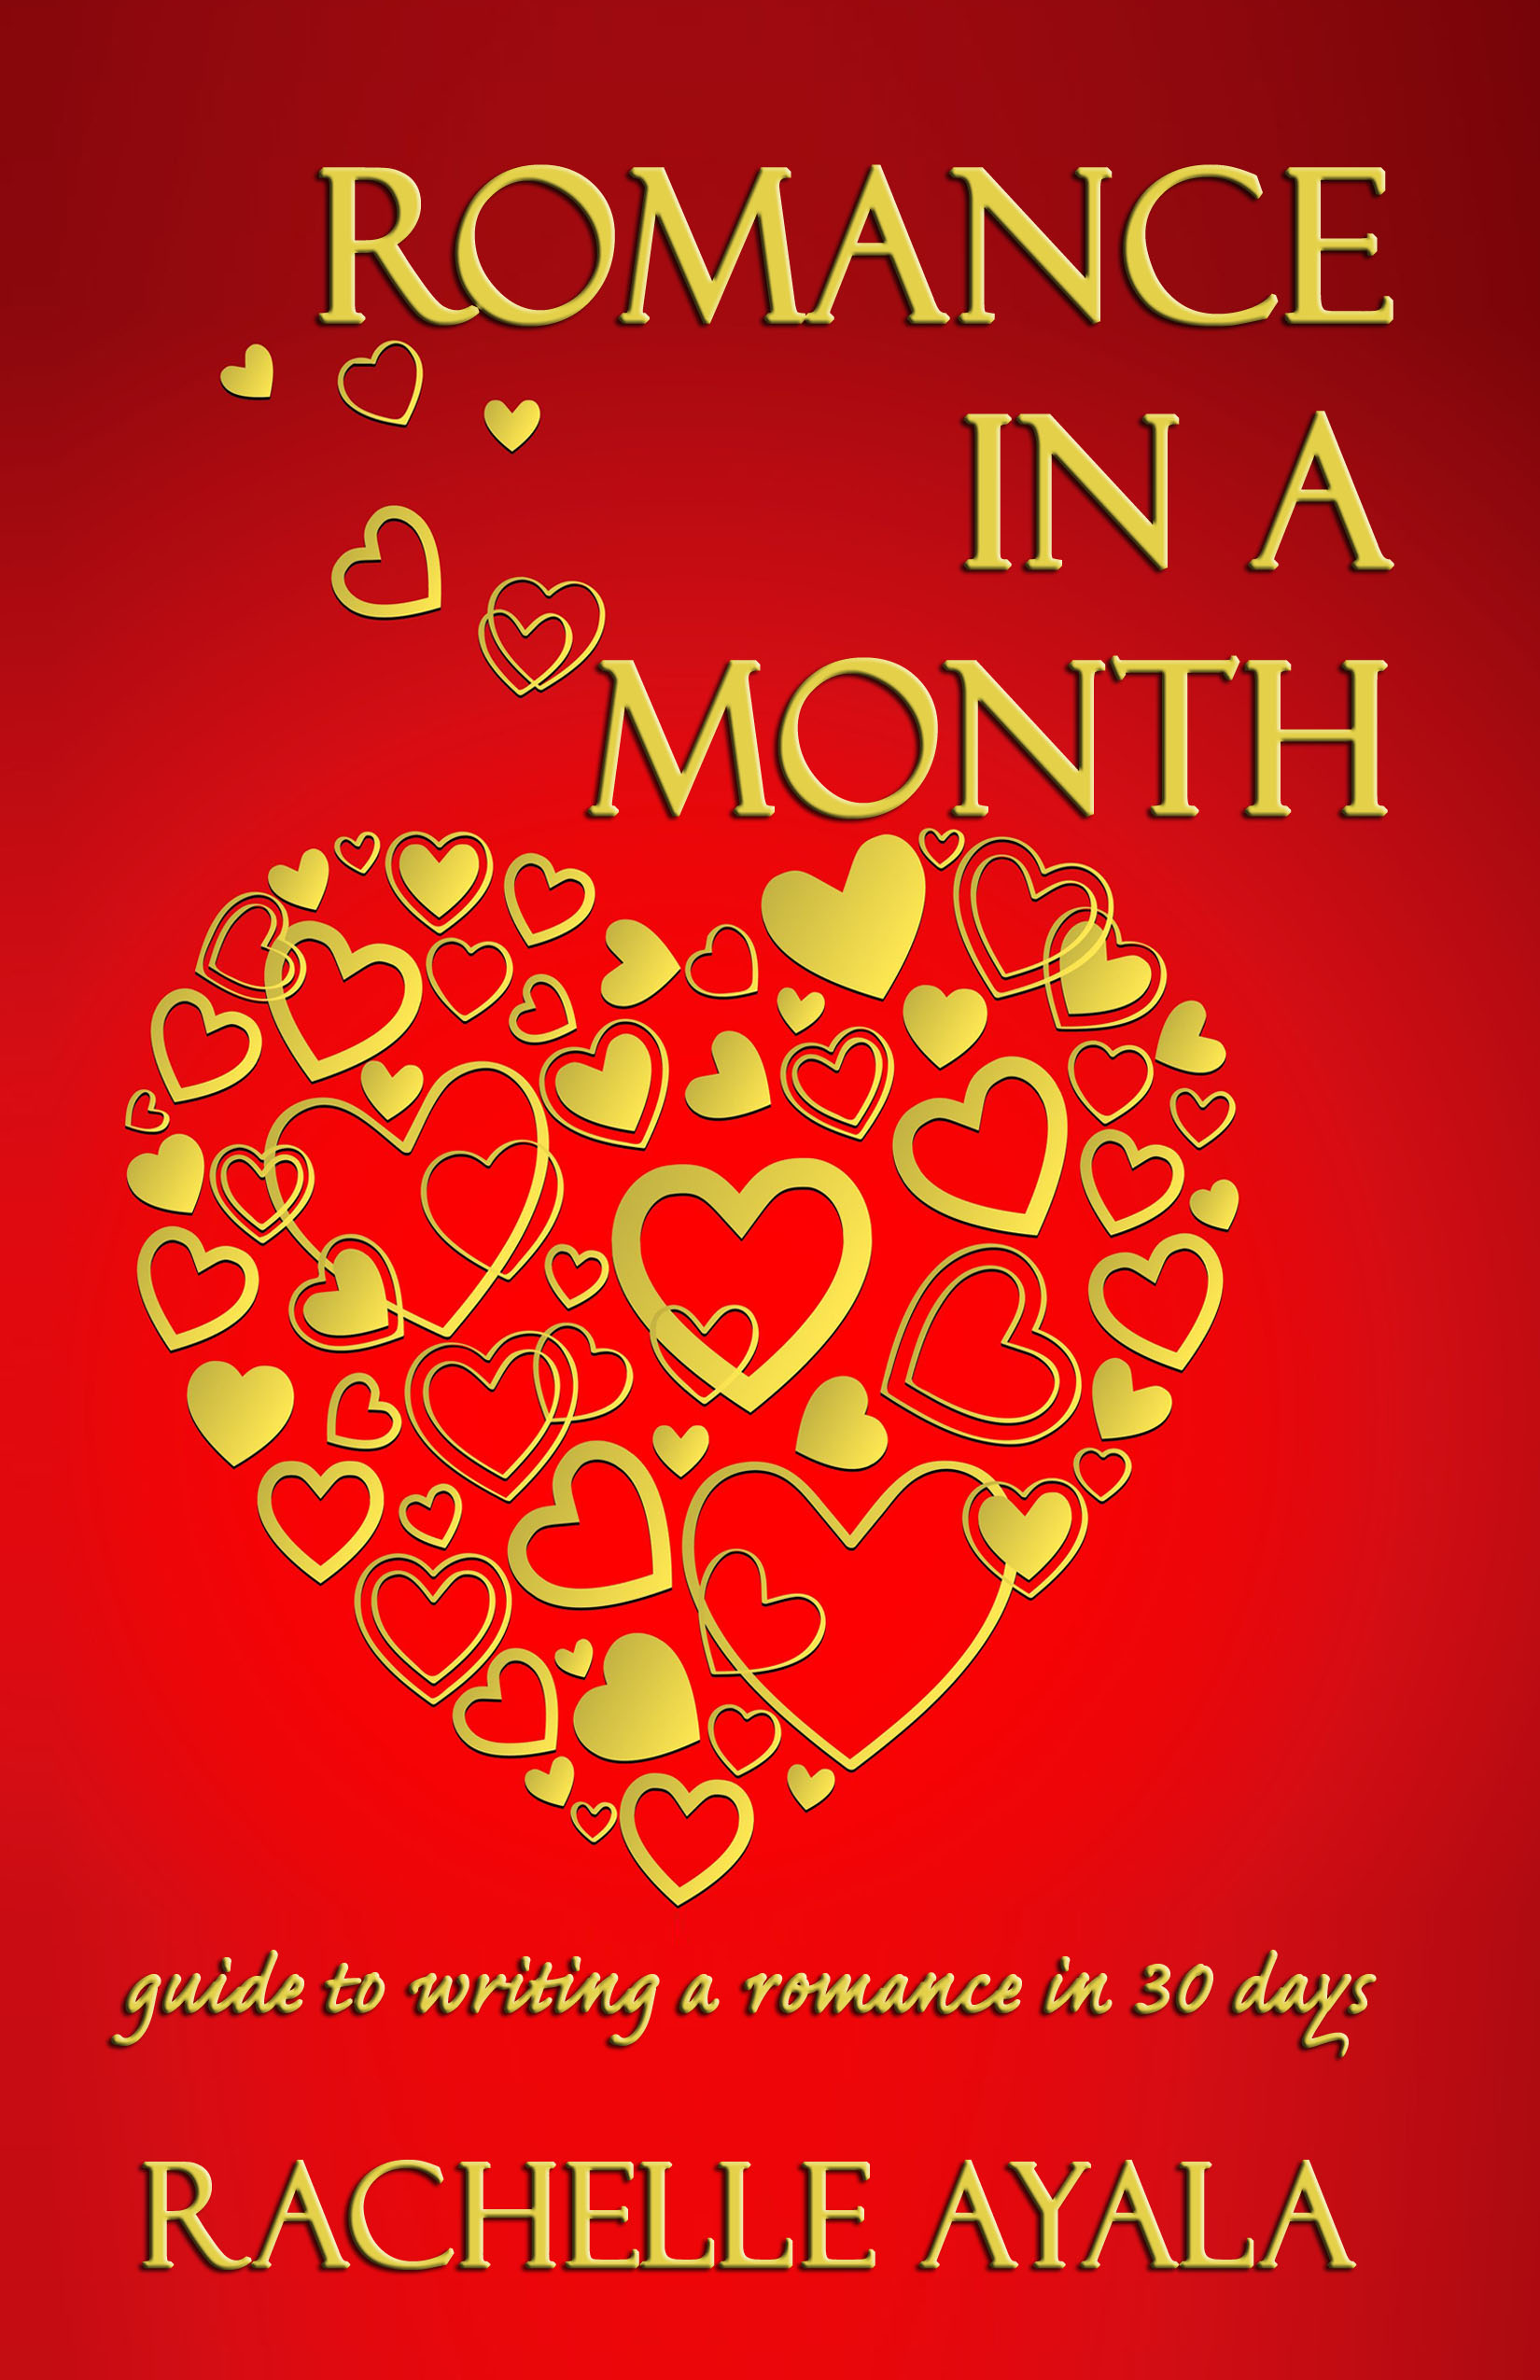 Romance in a month